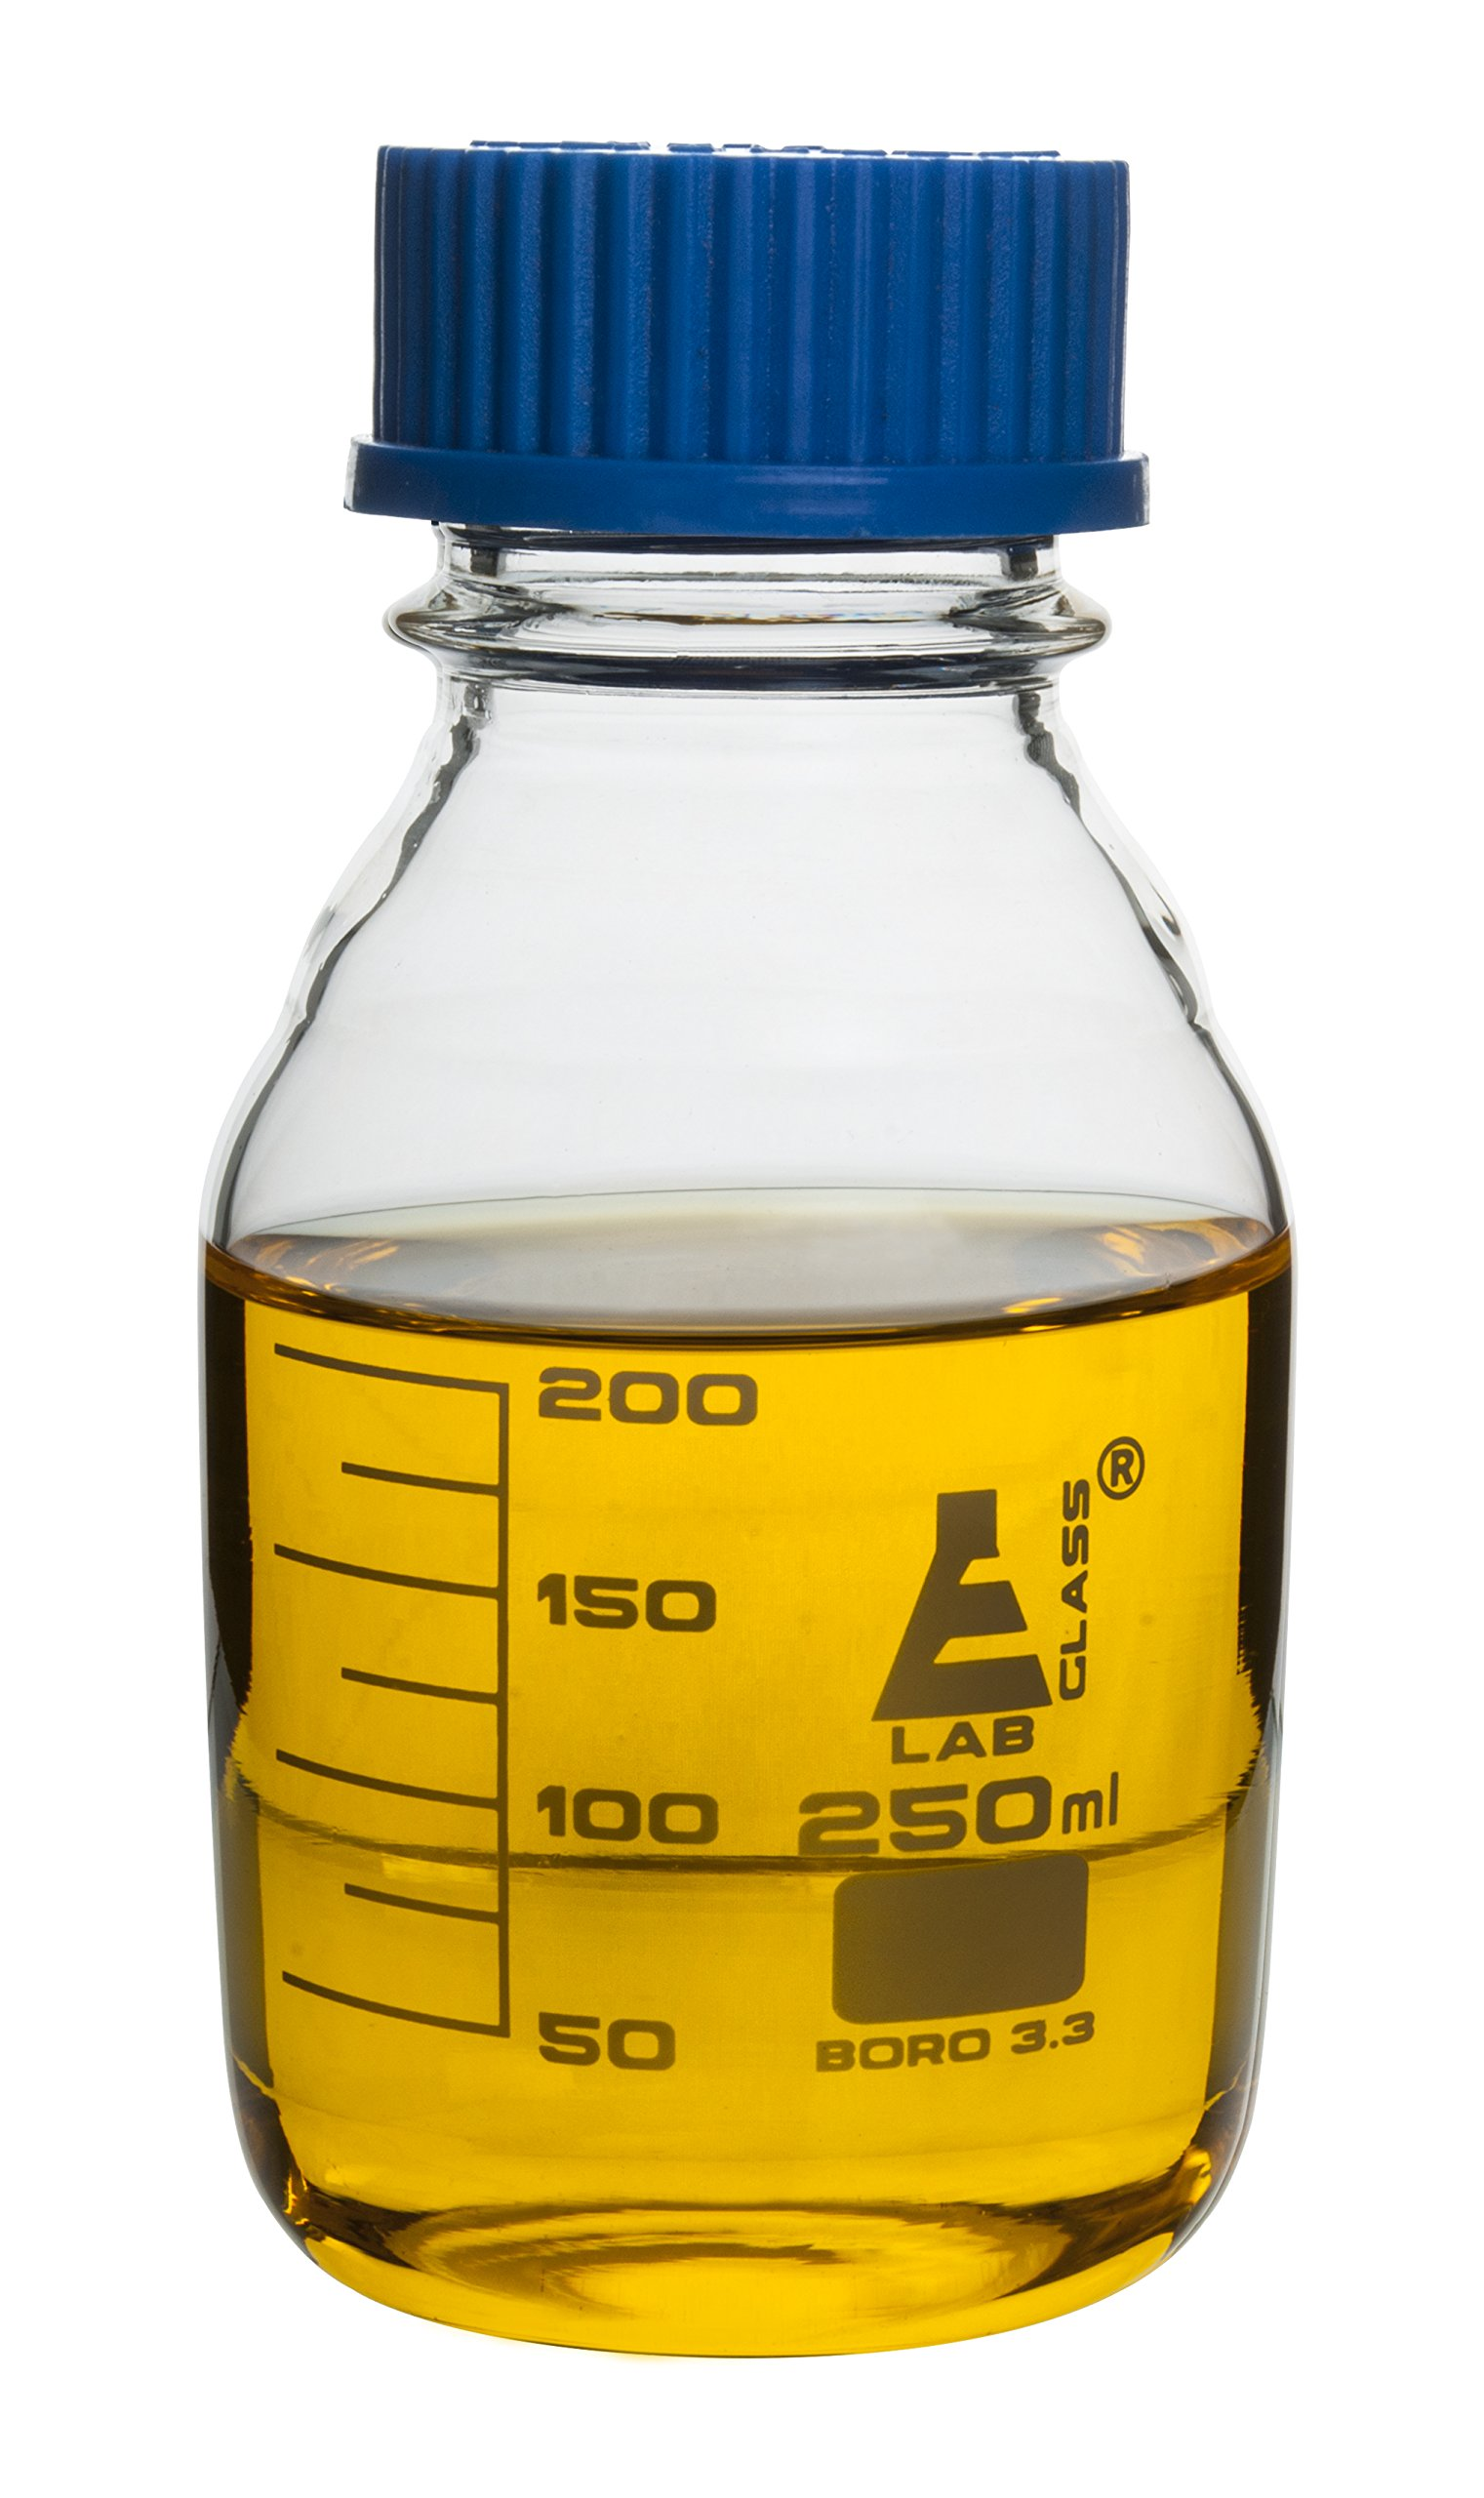 Eisco Labs 250ml Clear Reagent Bottle with Screw Cap and 25ml Graduations